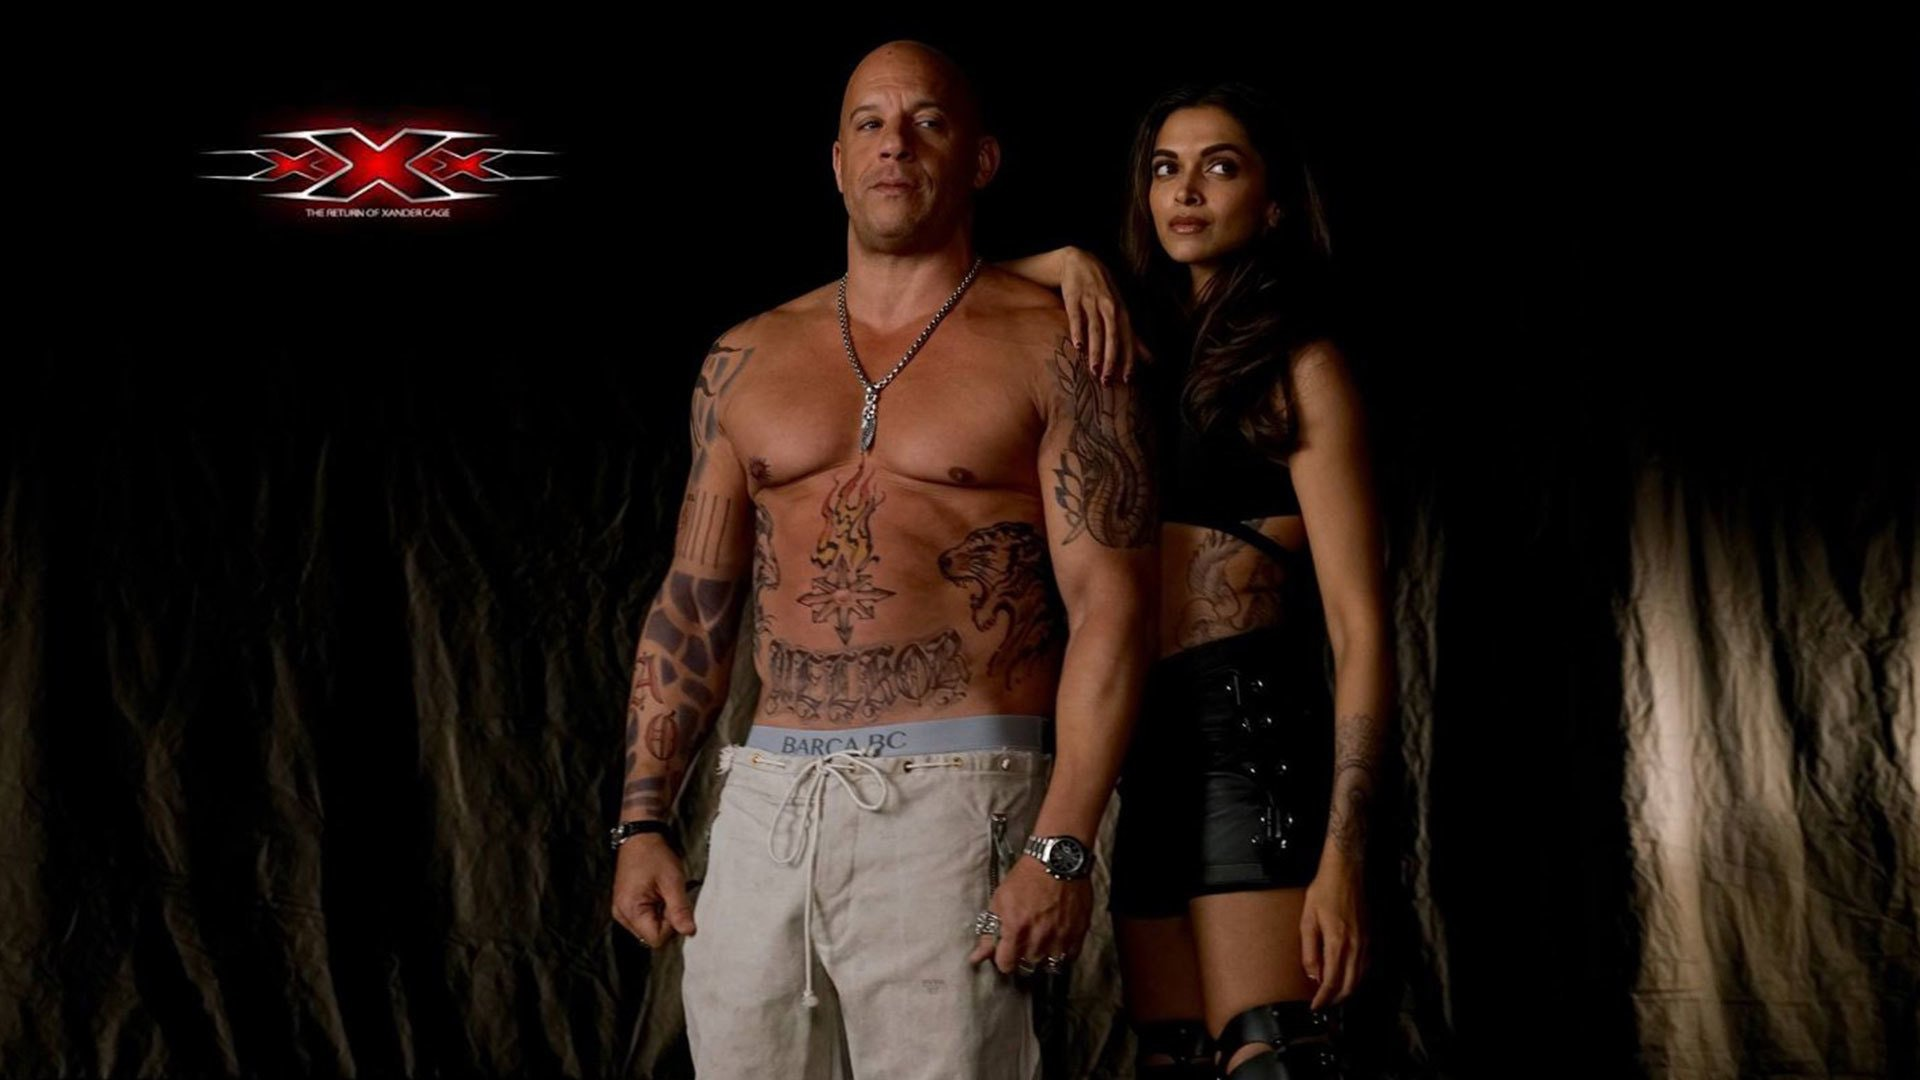 xXx: Return of Xander Cage (2017) Soundtrack